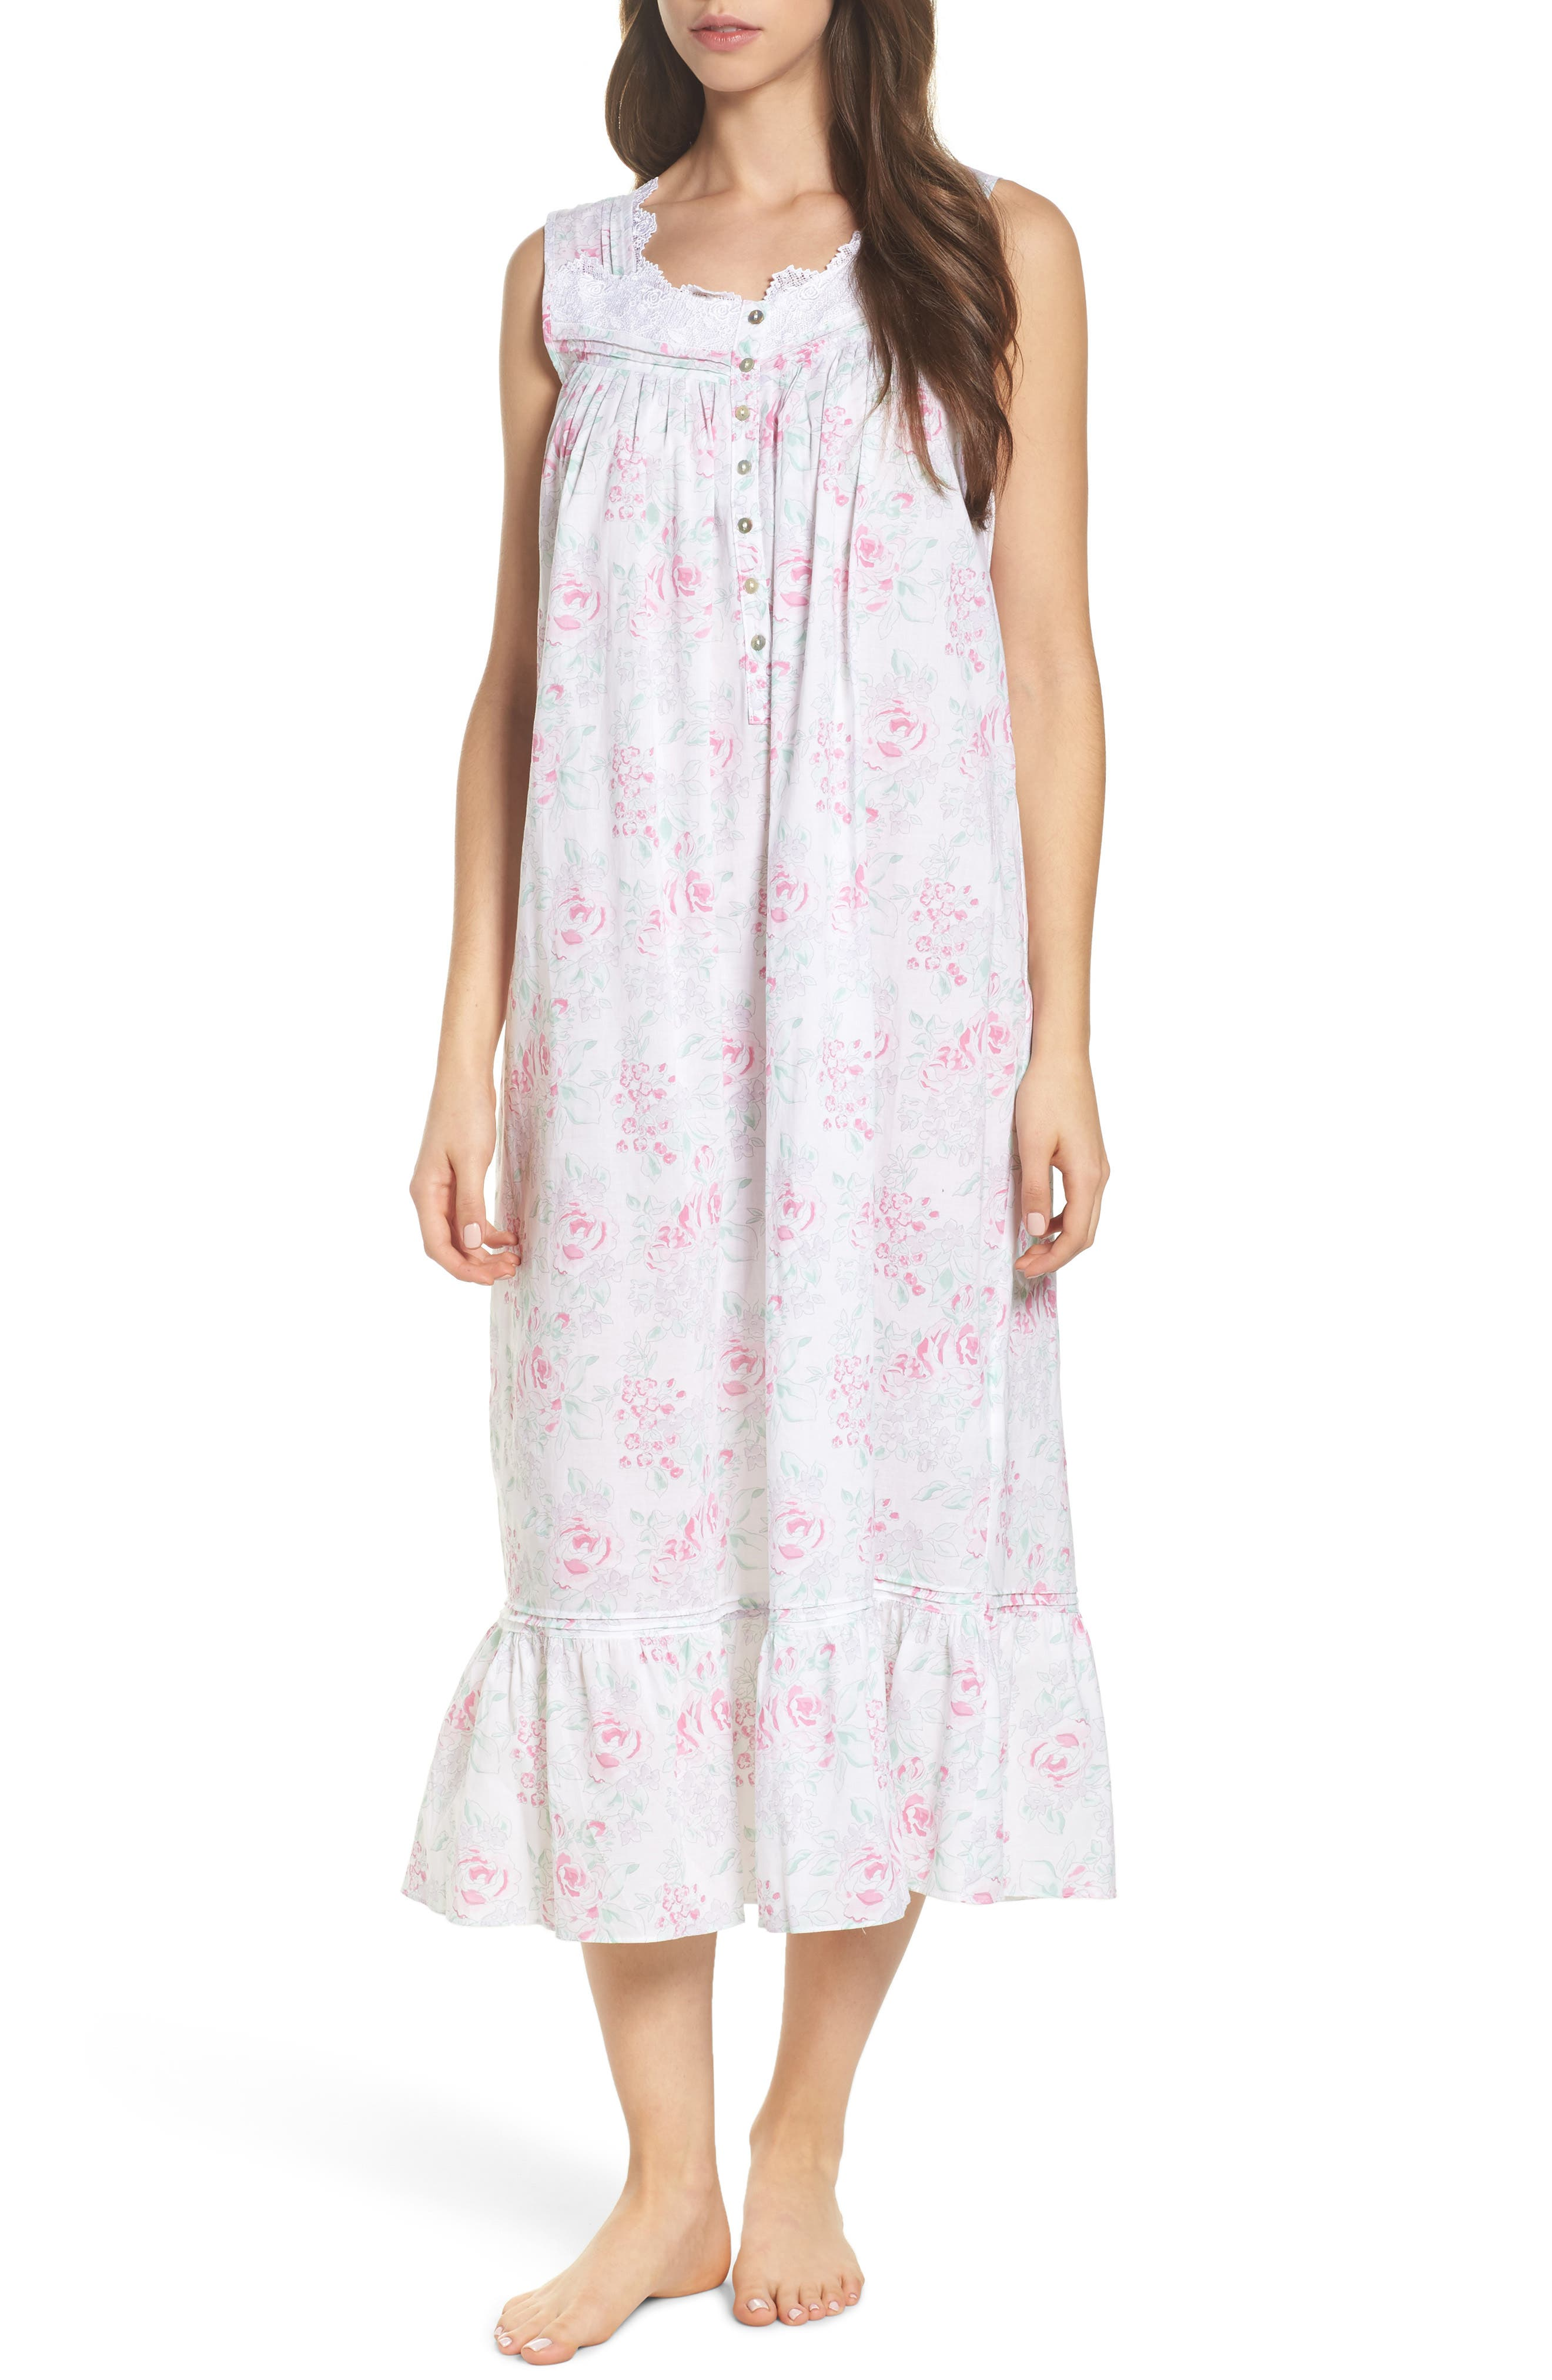 Cotton Nightgown,                         Main,                         color, White Watercolor Floral